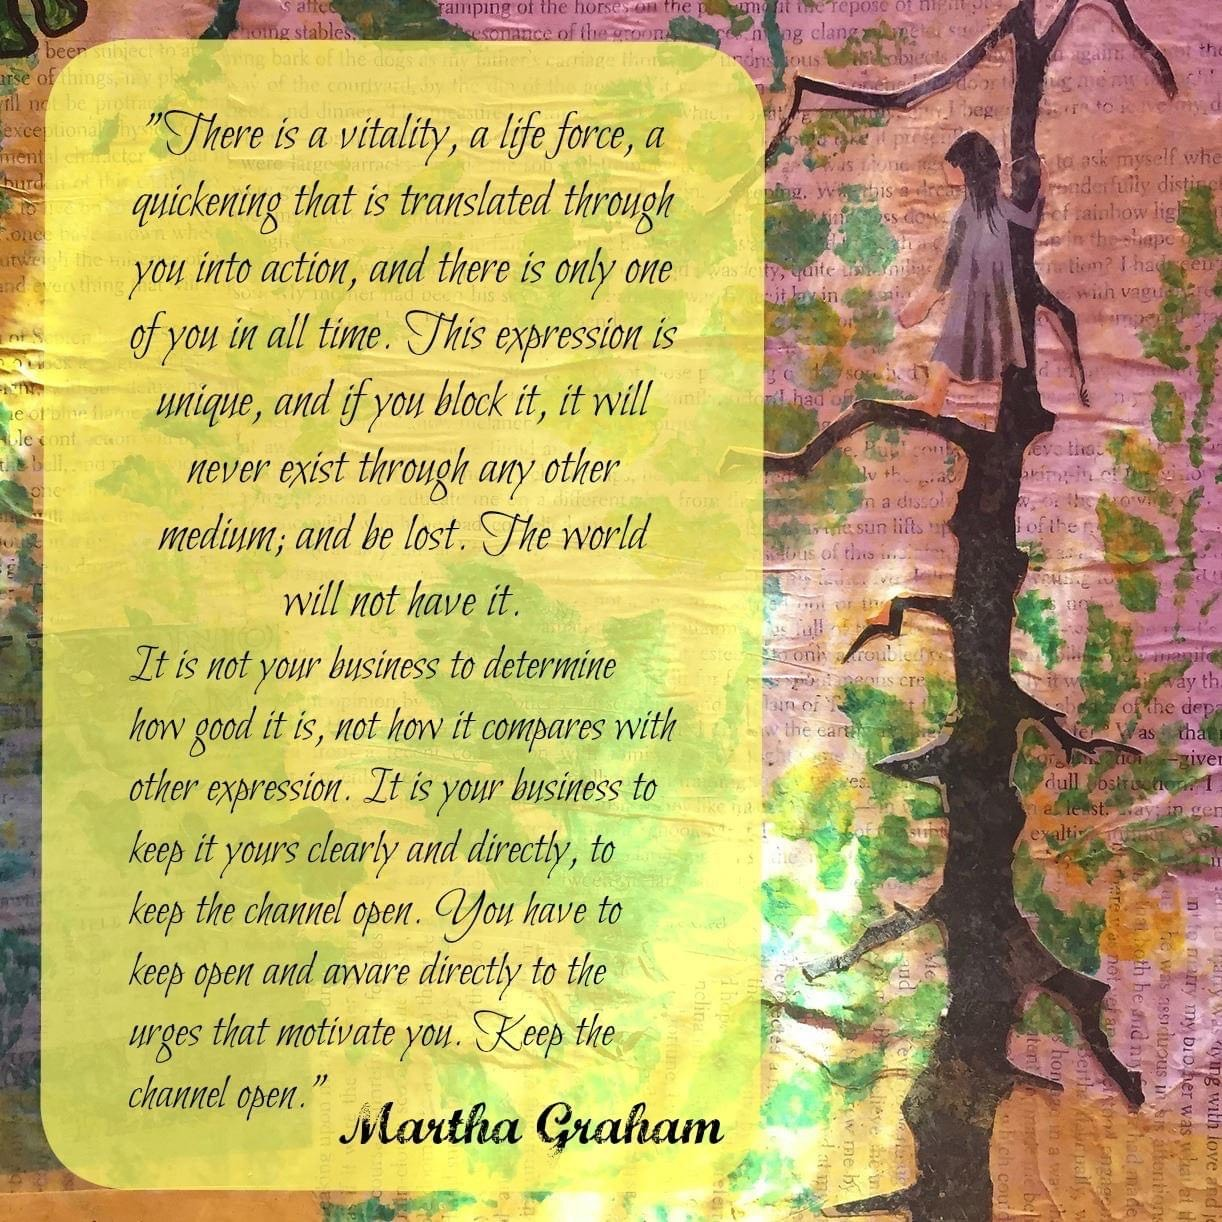 Mixed media art of a girl climbing a tree with the Martha Graham quote, There is a vitality, a life force, an energy, a quickening, that is translated through you into action, and because there is only one of you in all time, this expression is unique, and if you block it, it will never exist through any other medium and will be lost.""